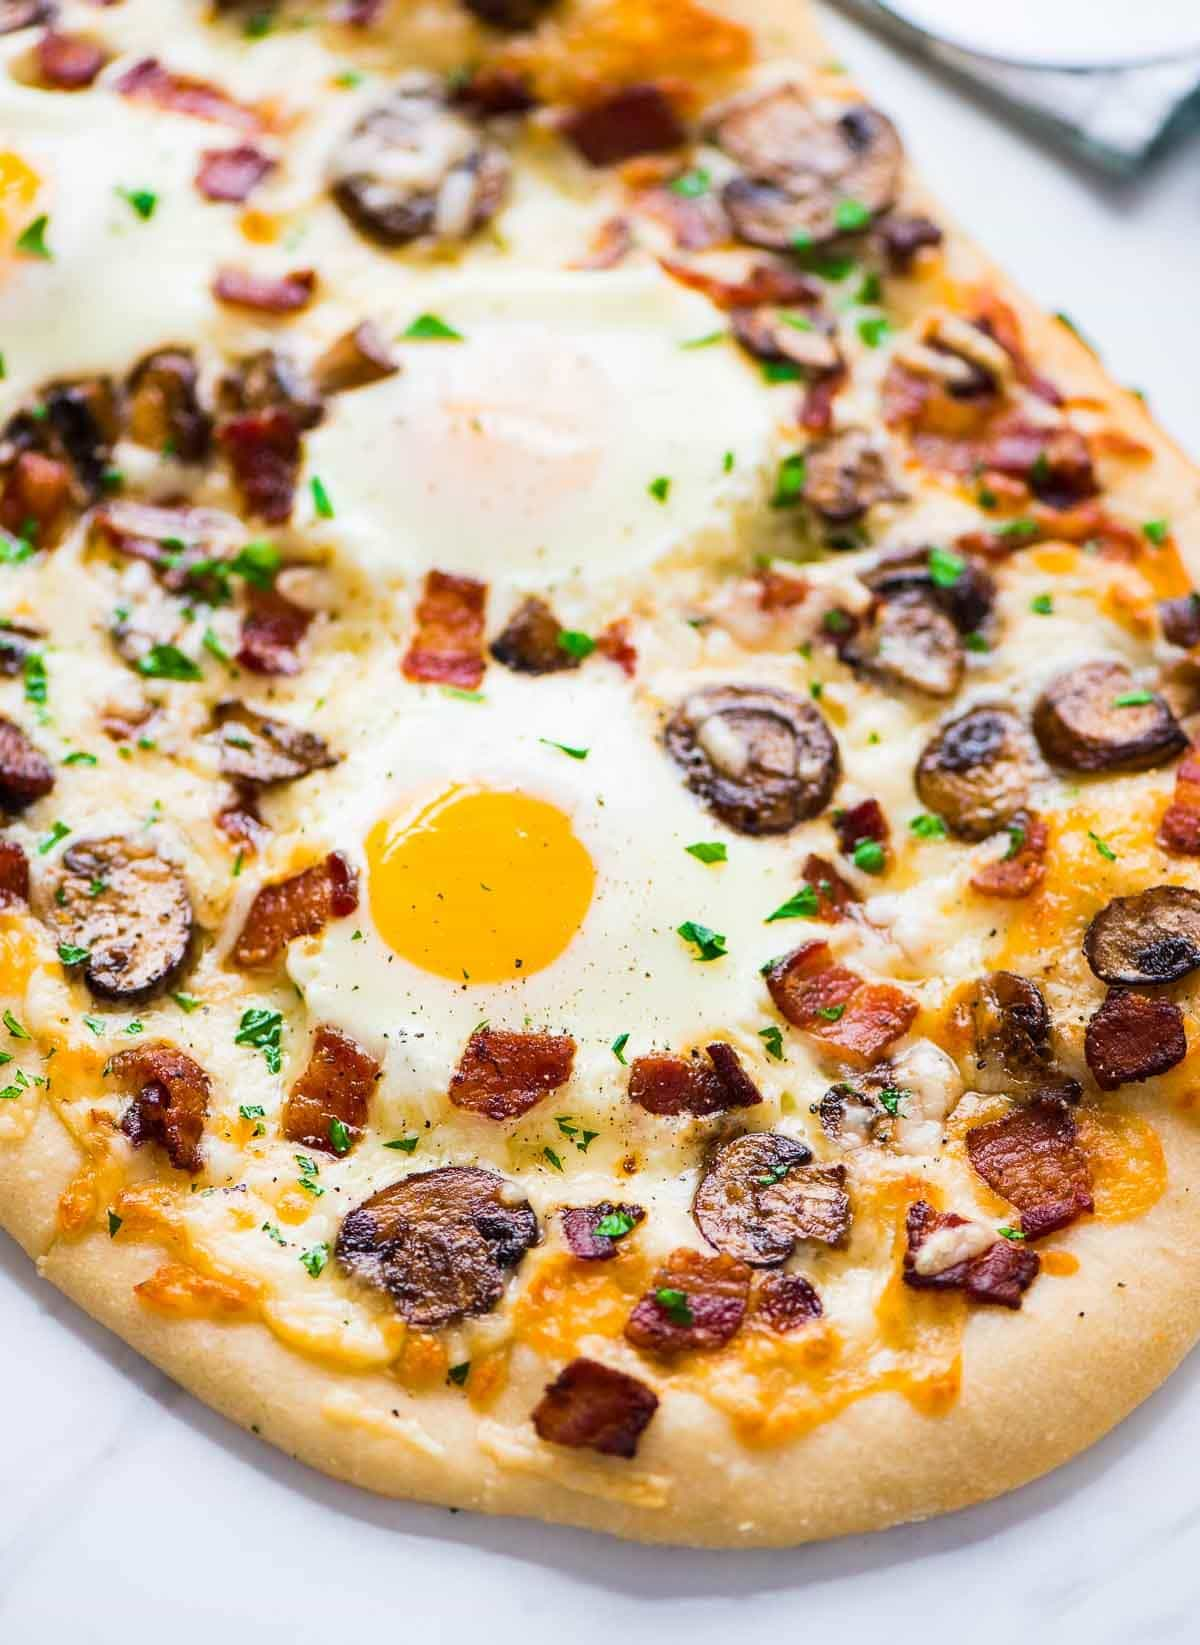 Carbonara Pizza with bacon, mushrooms, garlic, and a sunny side up egg. The bacon and yolk make this pizza absolutely irresistible! Recipe at wellplated.com | @wellplated